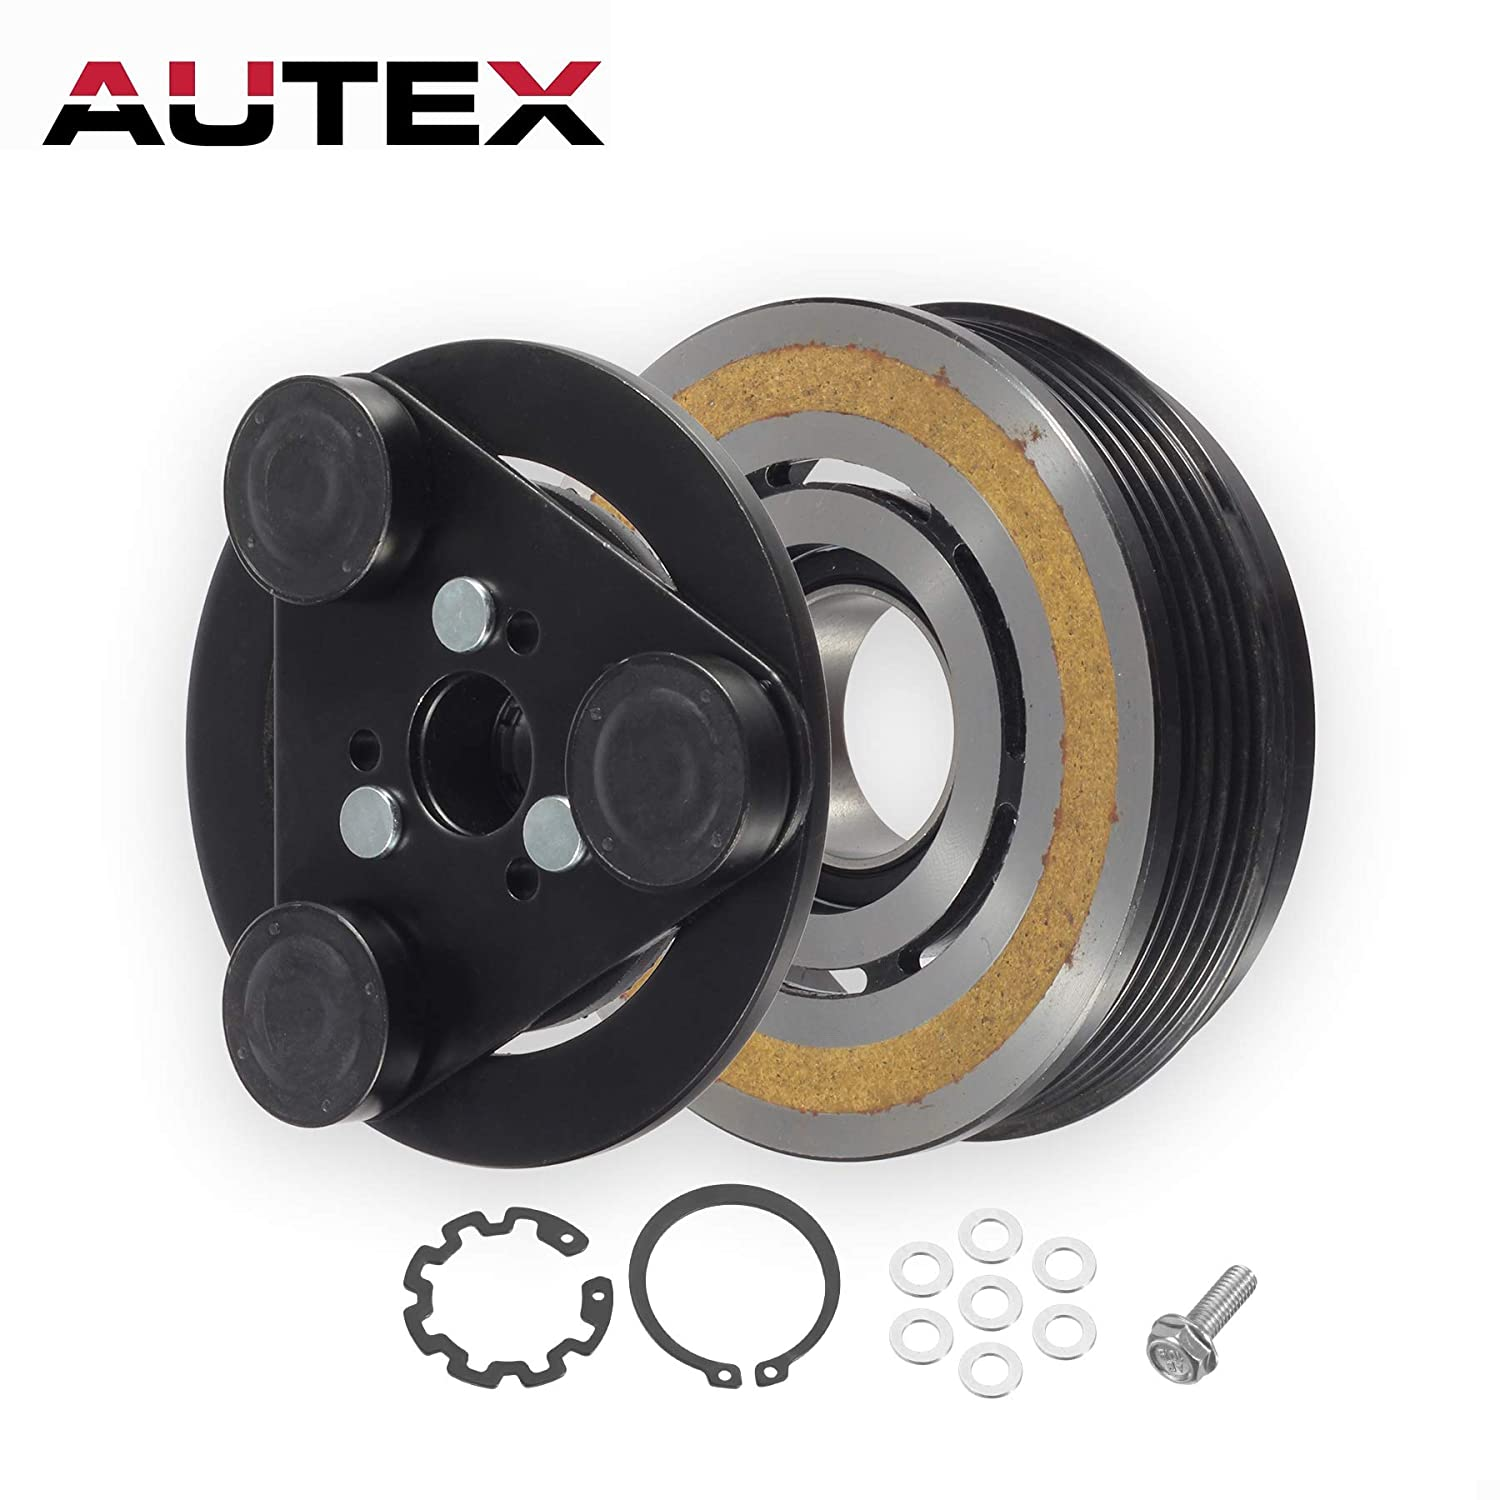 AUTEX AC A/C Compressor Clutch Coil Assembly Kit BP4S61K00 Fits for 2004 2005 2006 2007 2008 2009 MAZDA 3 2006 2007 2008 2009 MAZDA 5